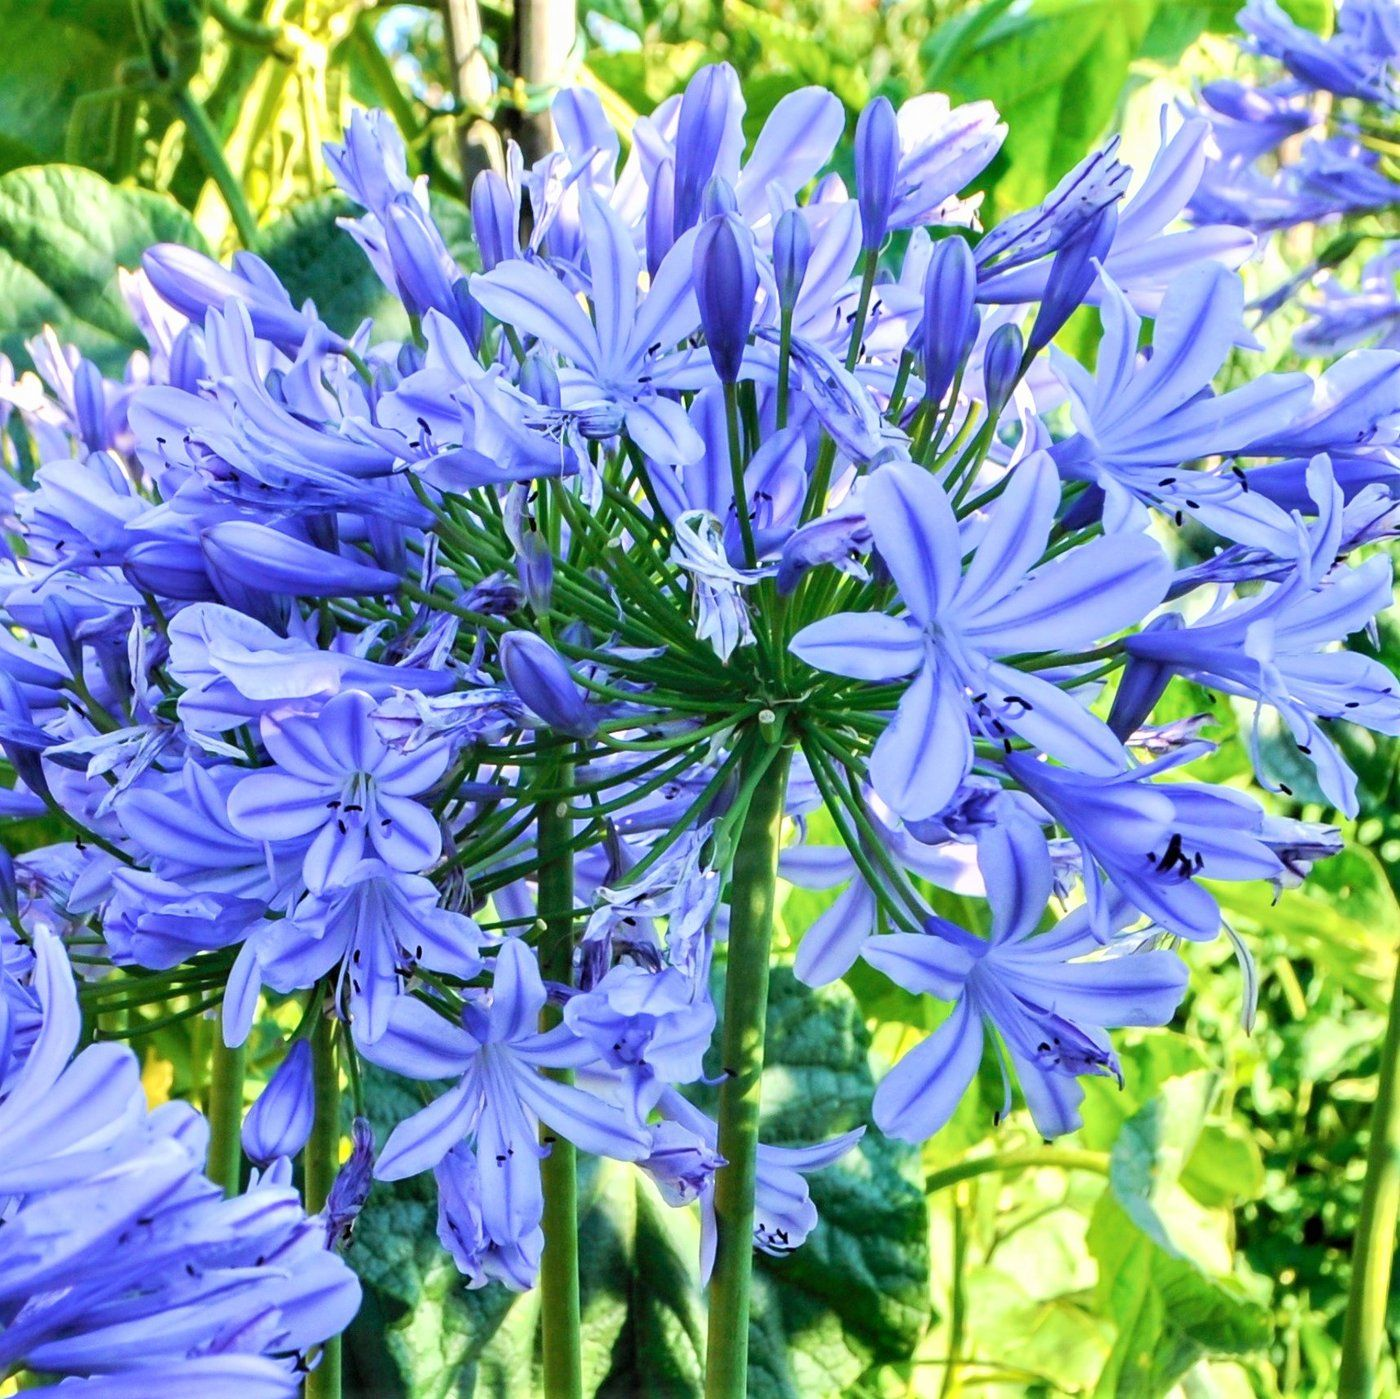 Agapanthus Delft Blue Agapanthus Easy To Grow Bulbs Agapanthus Plant